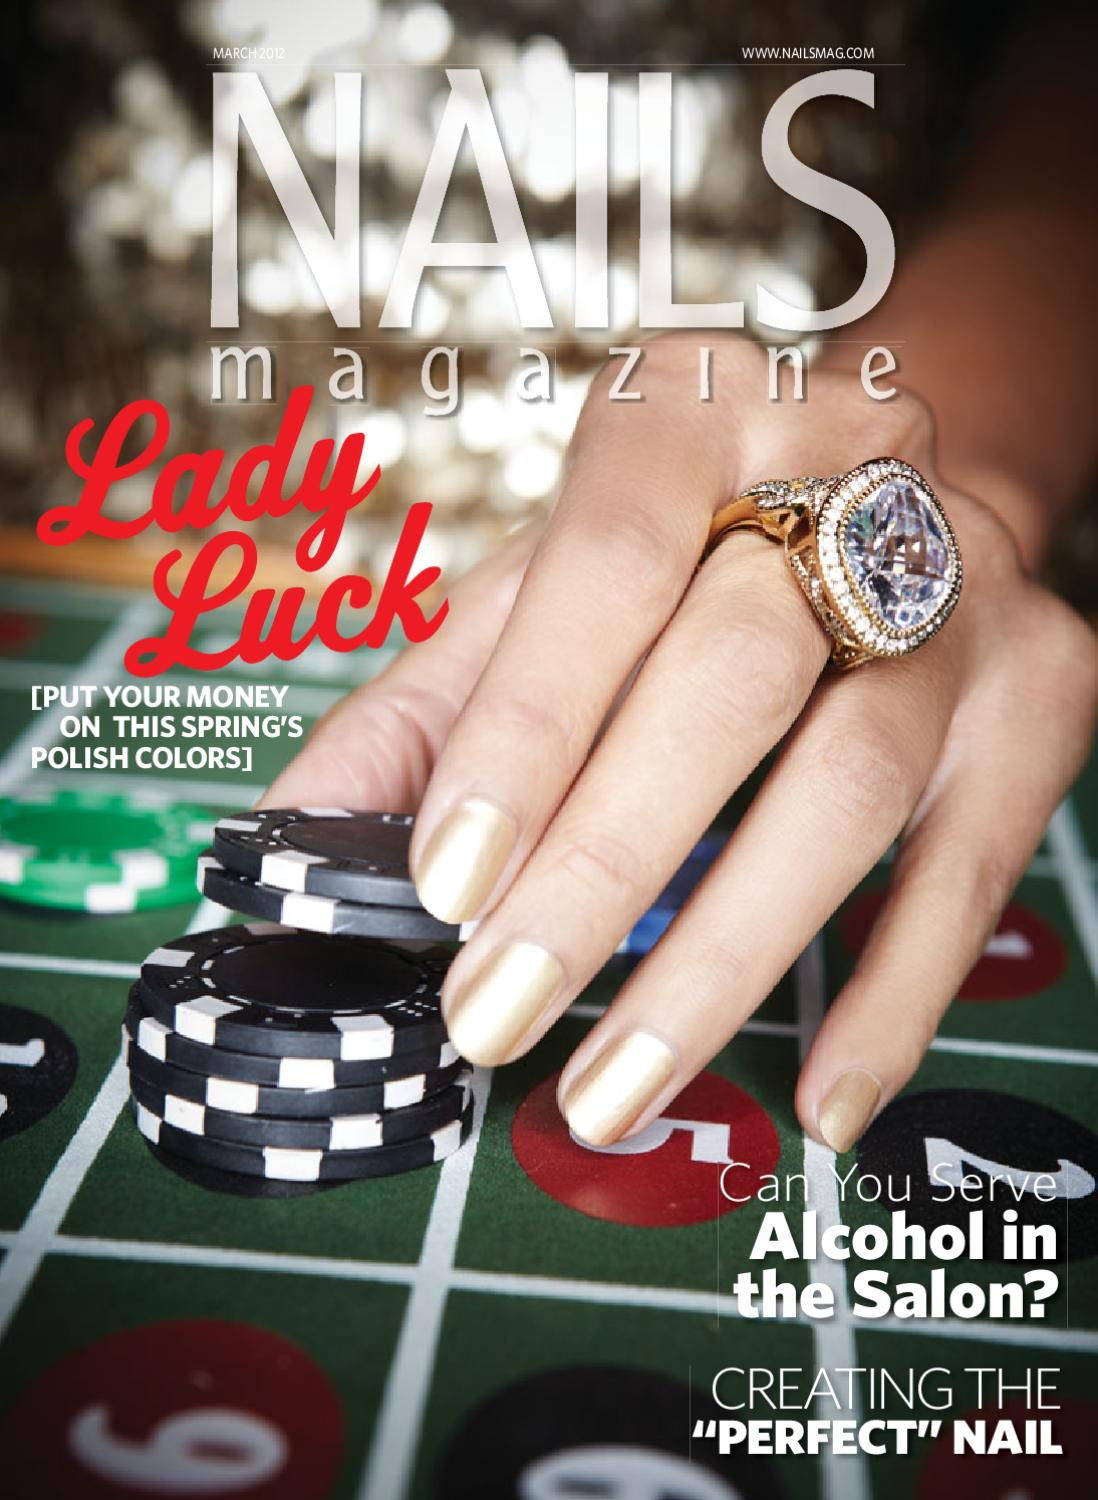 Nails Magazine March 2012 by Bobit Business Media - issuu